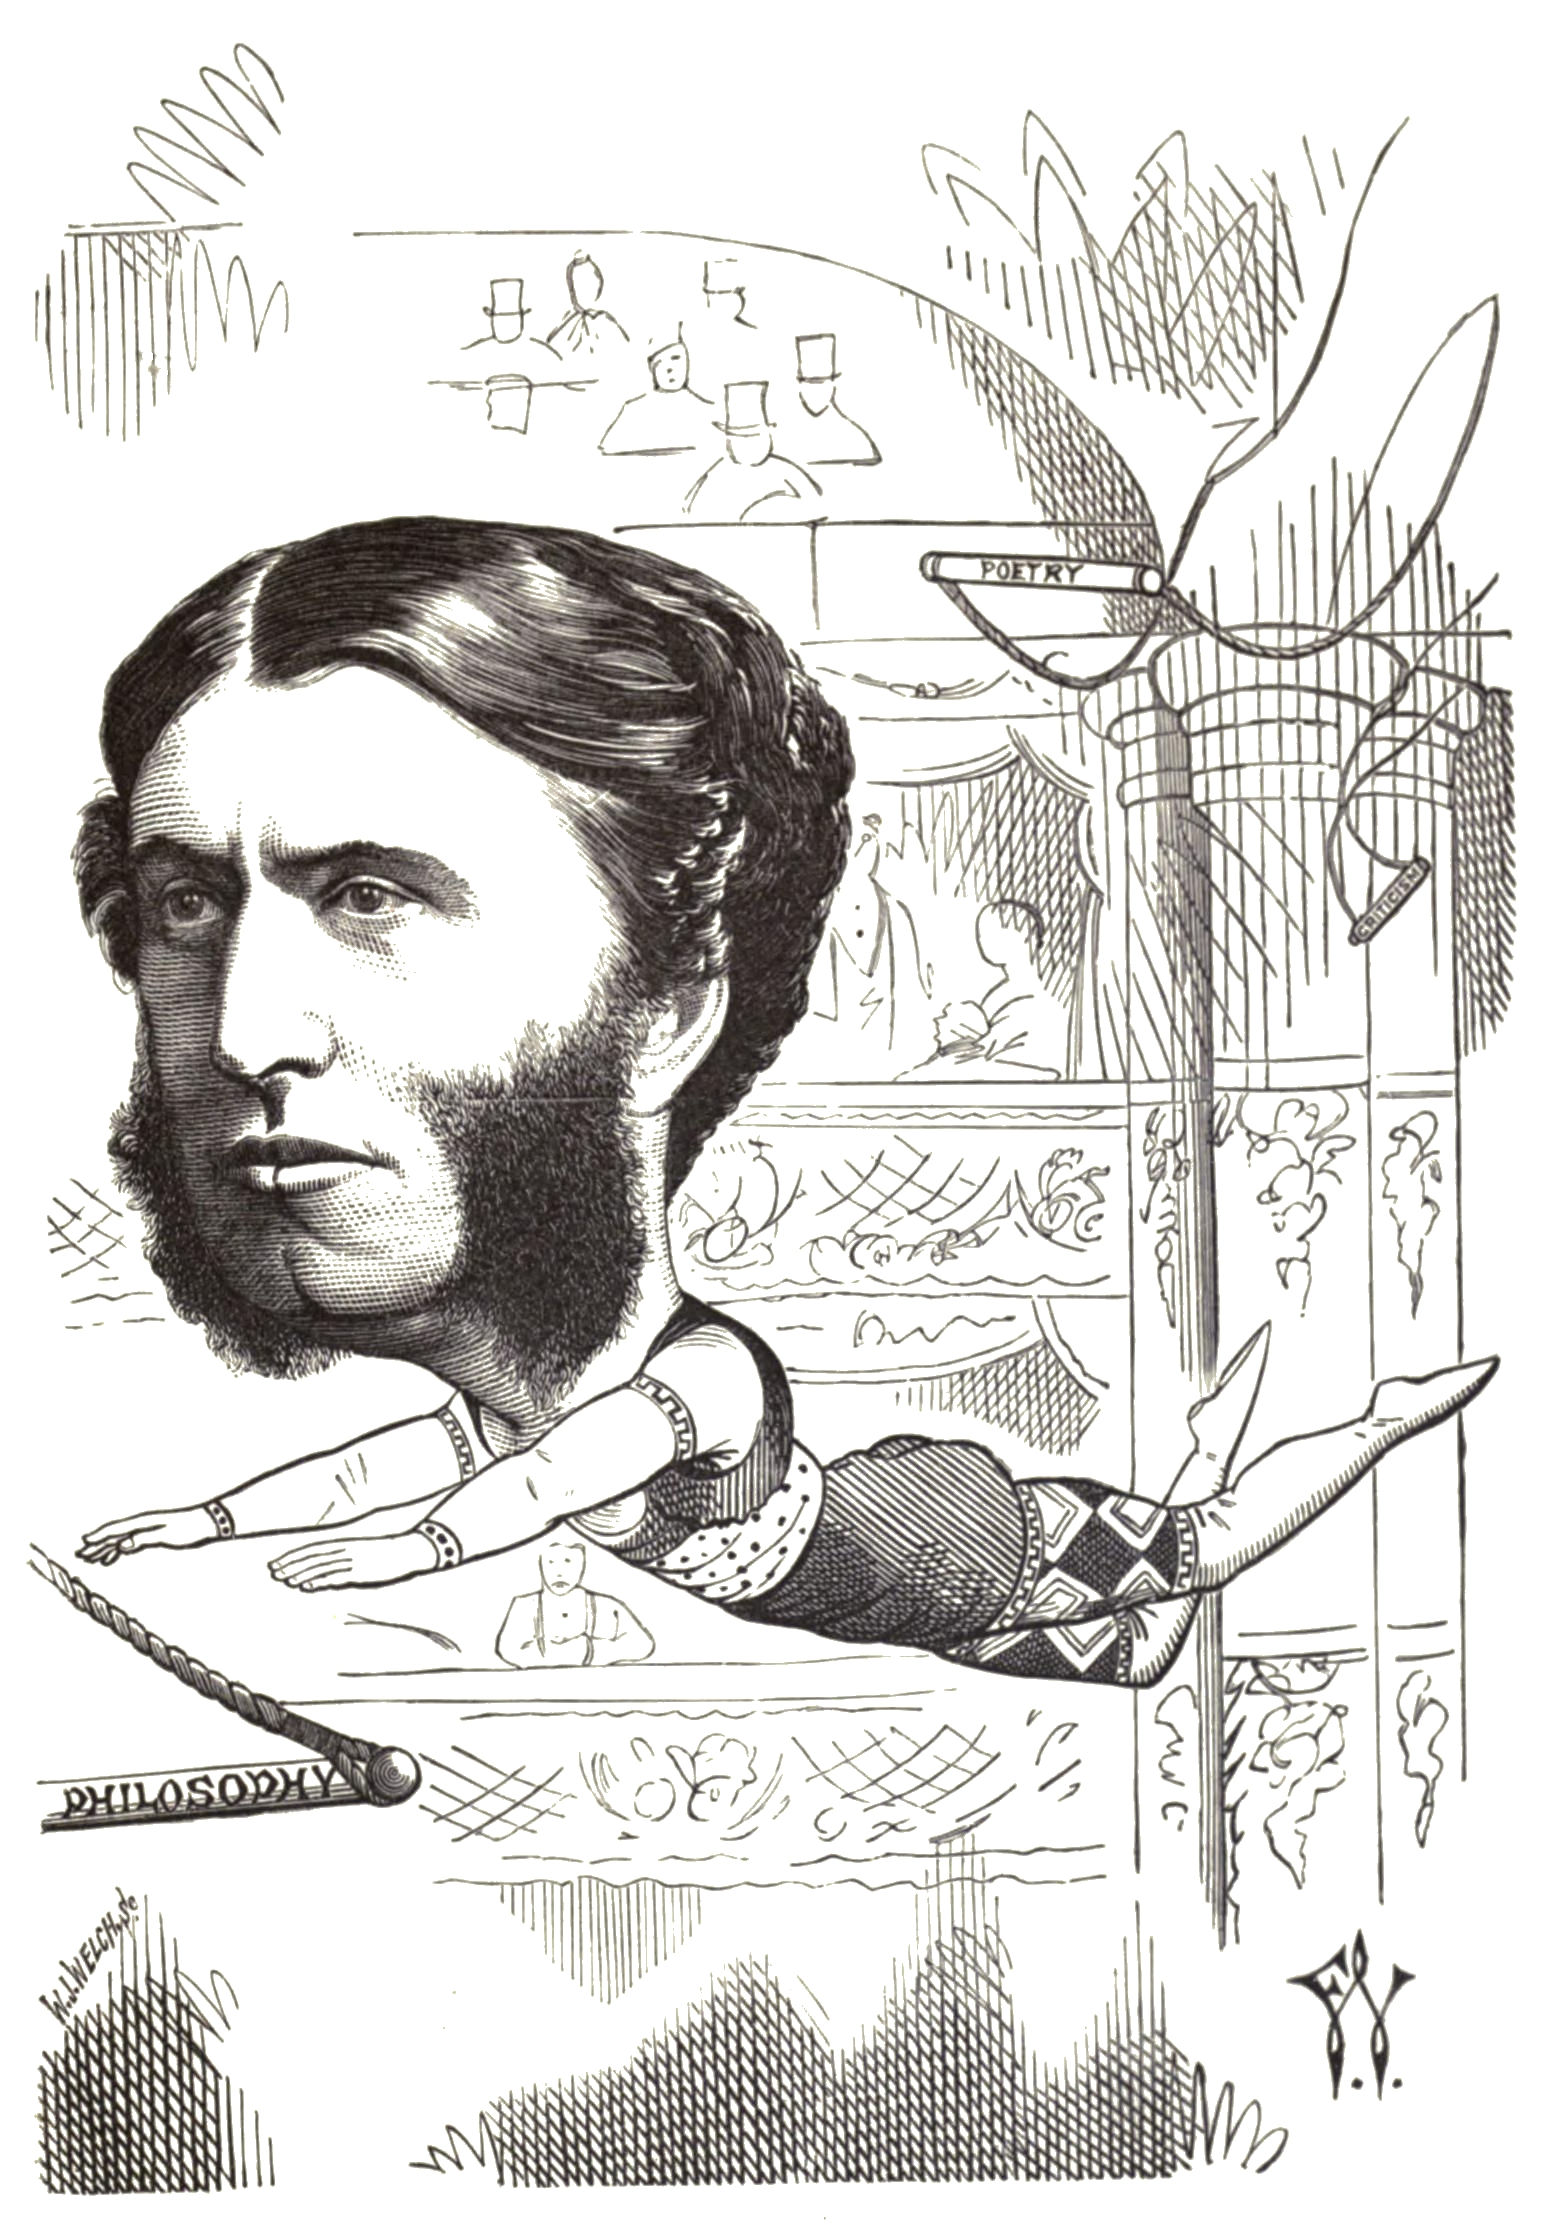 waddy men The story of edison's misadventures with the goldenrod plant demonstrate that even brilliant men veritable wizards of technology often get it  nicholas waddy.